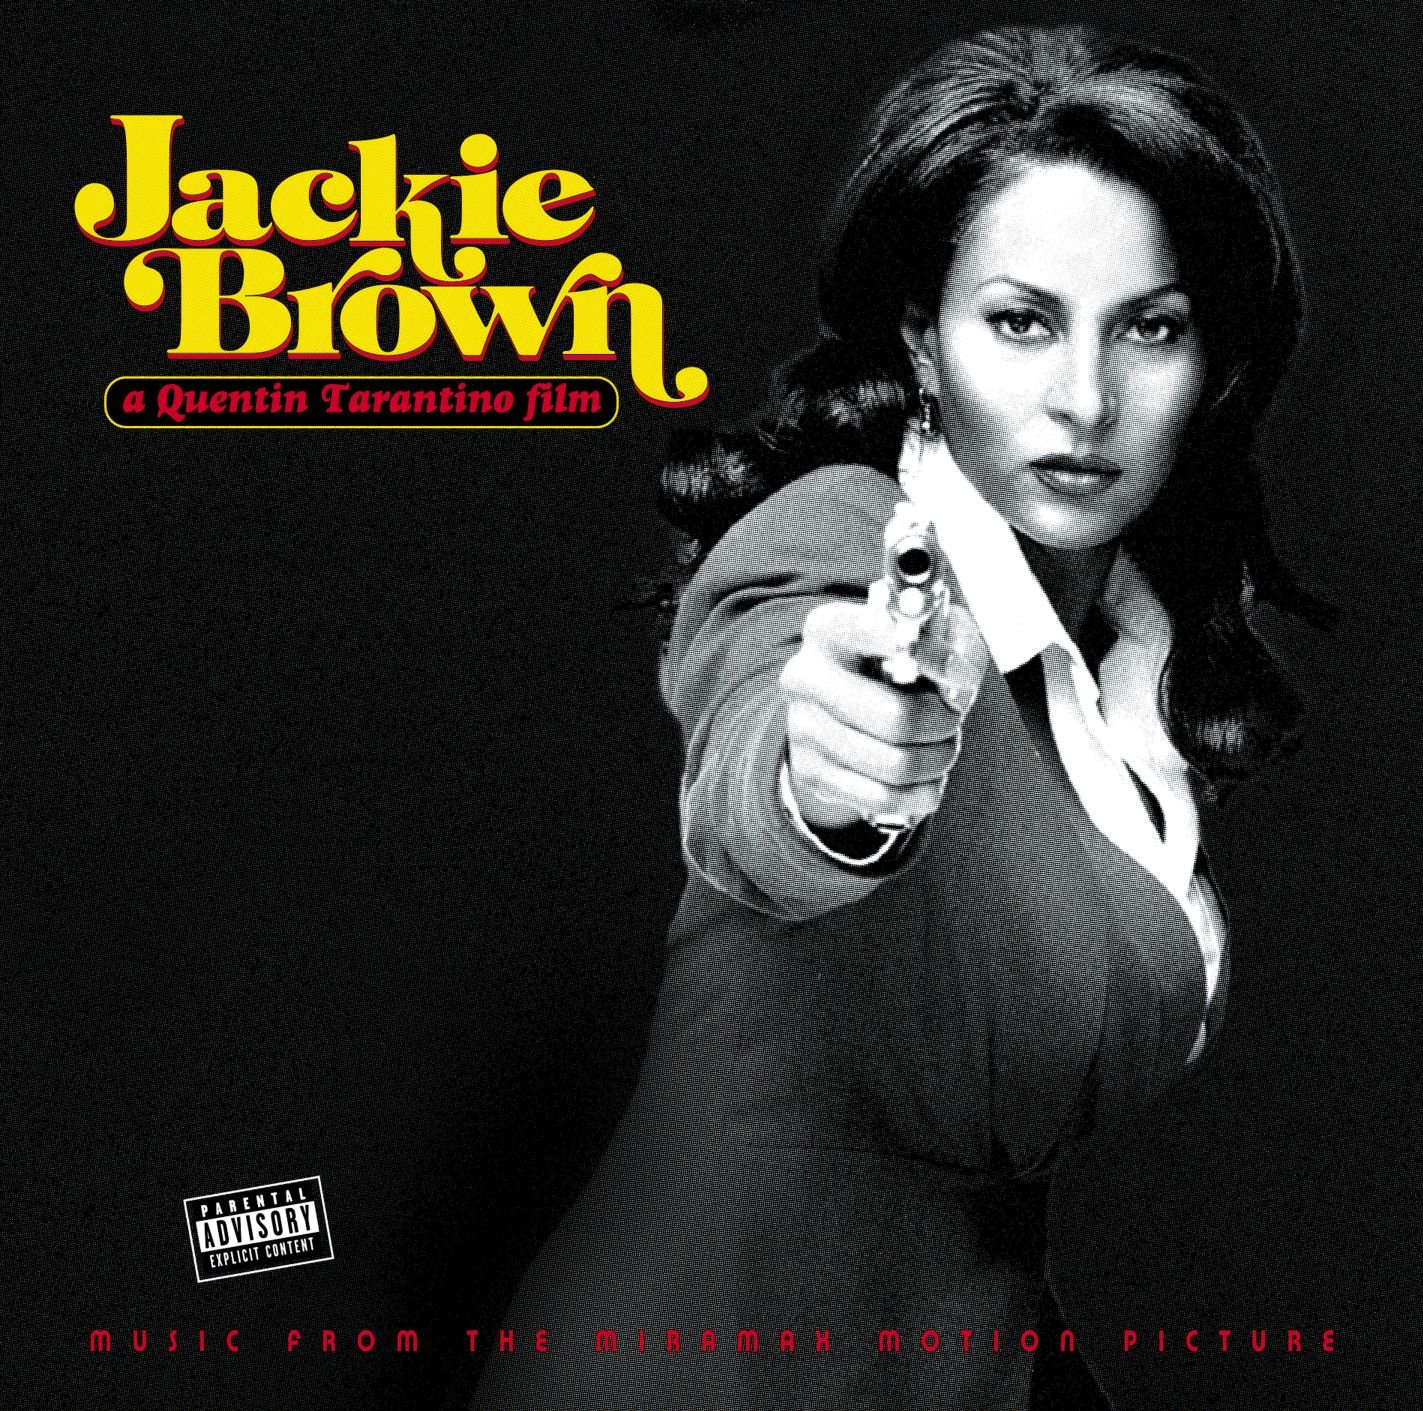 Jackie Brown: Music Spasm price From The Film Motion Miramax Ranking TOP16 1997 Picture